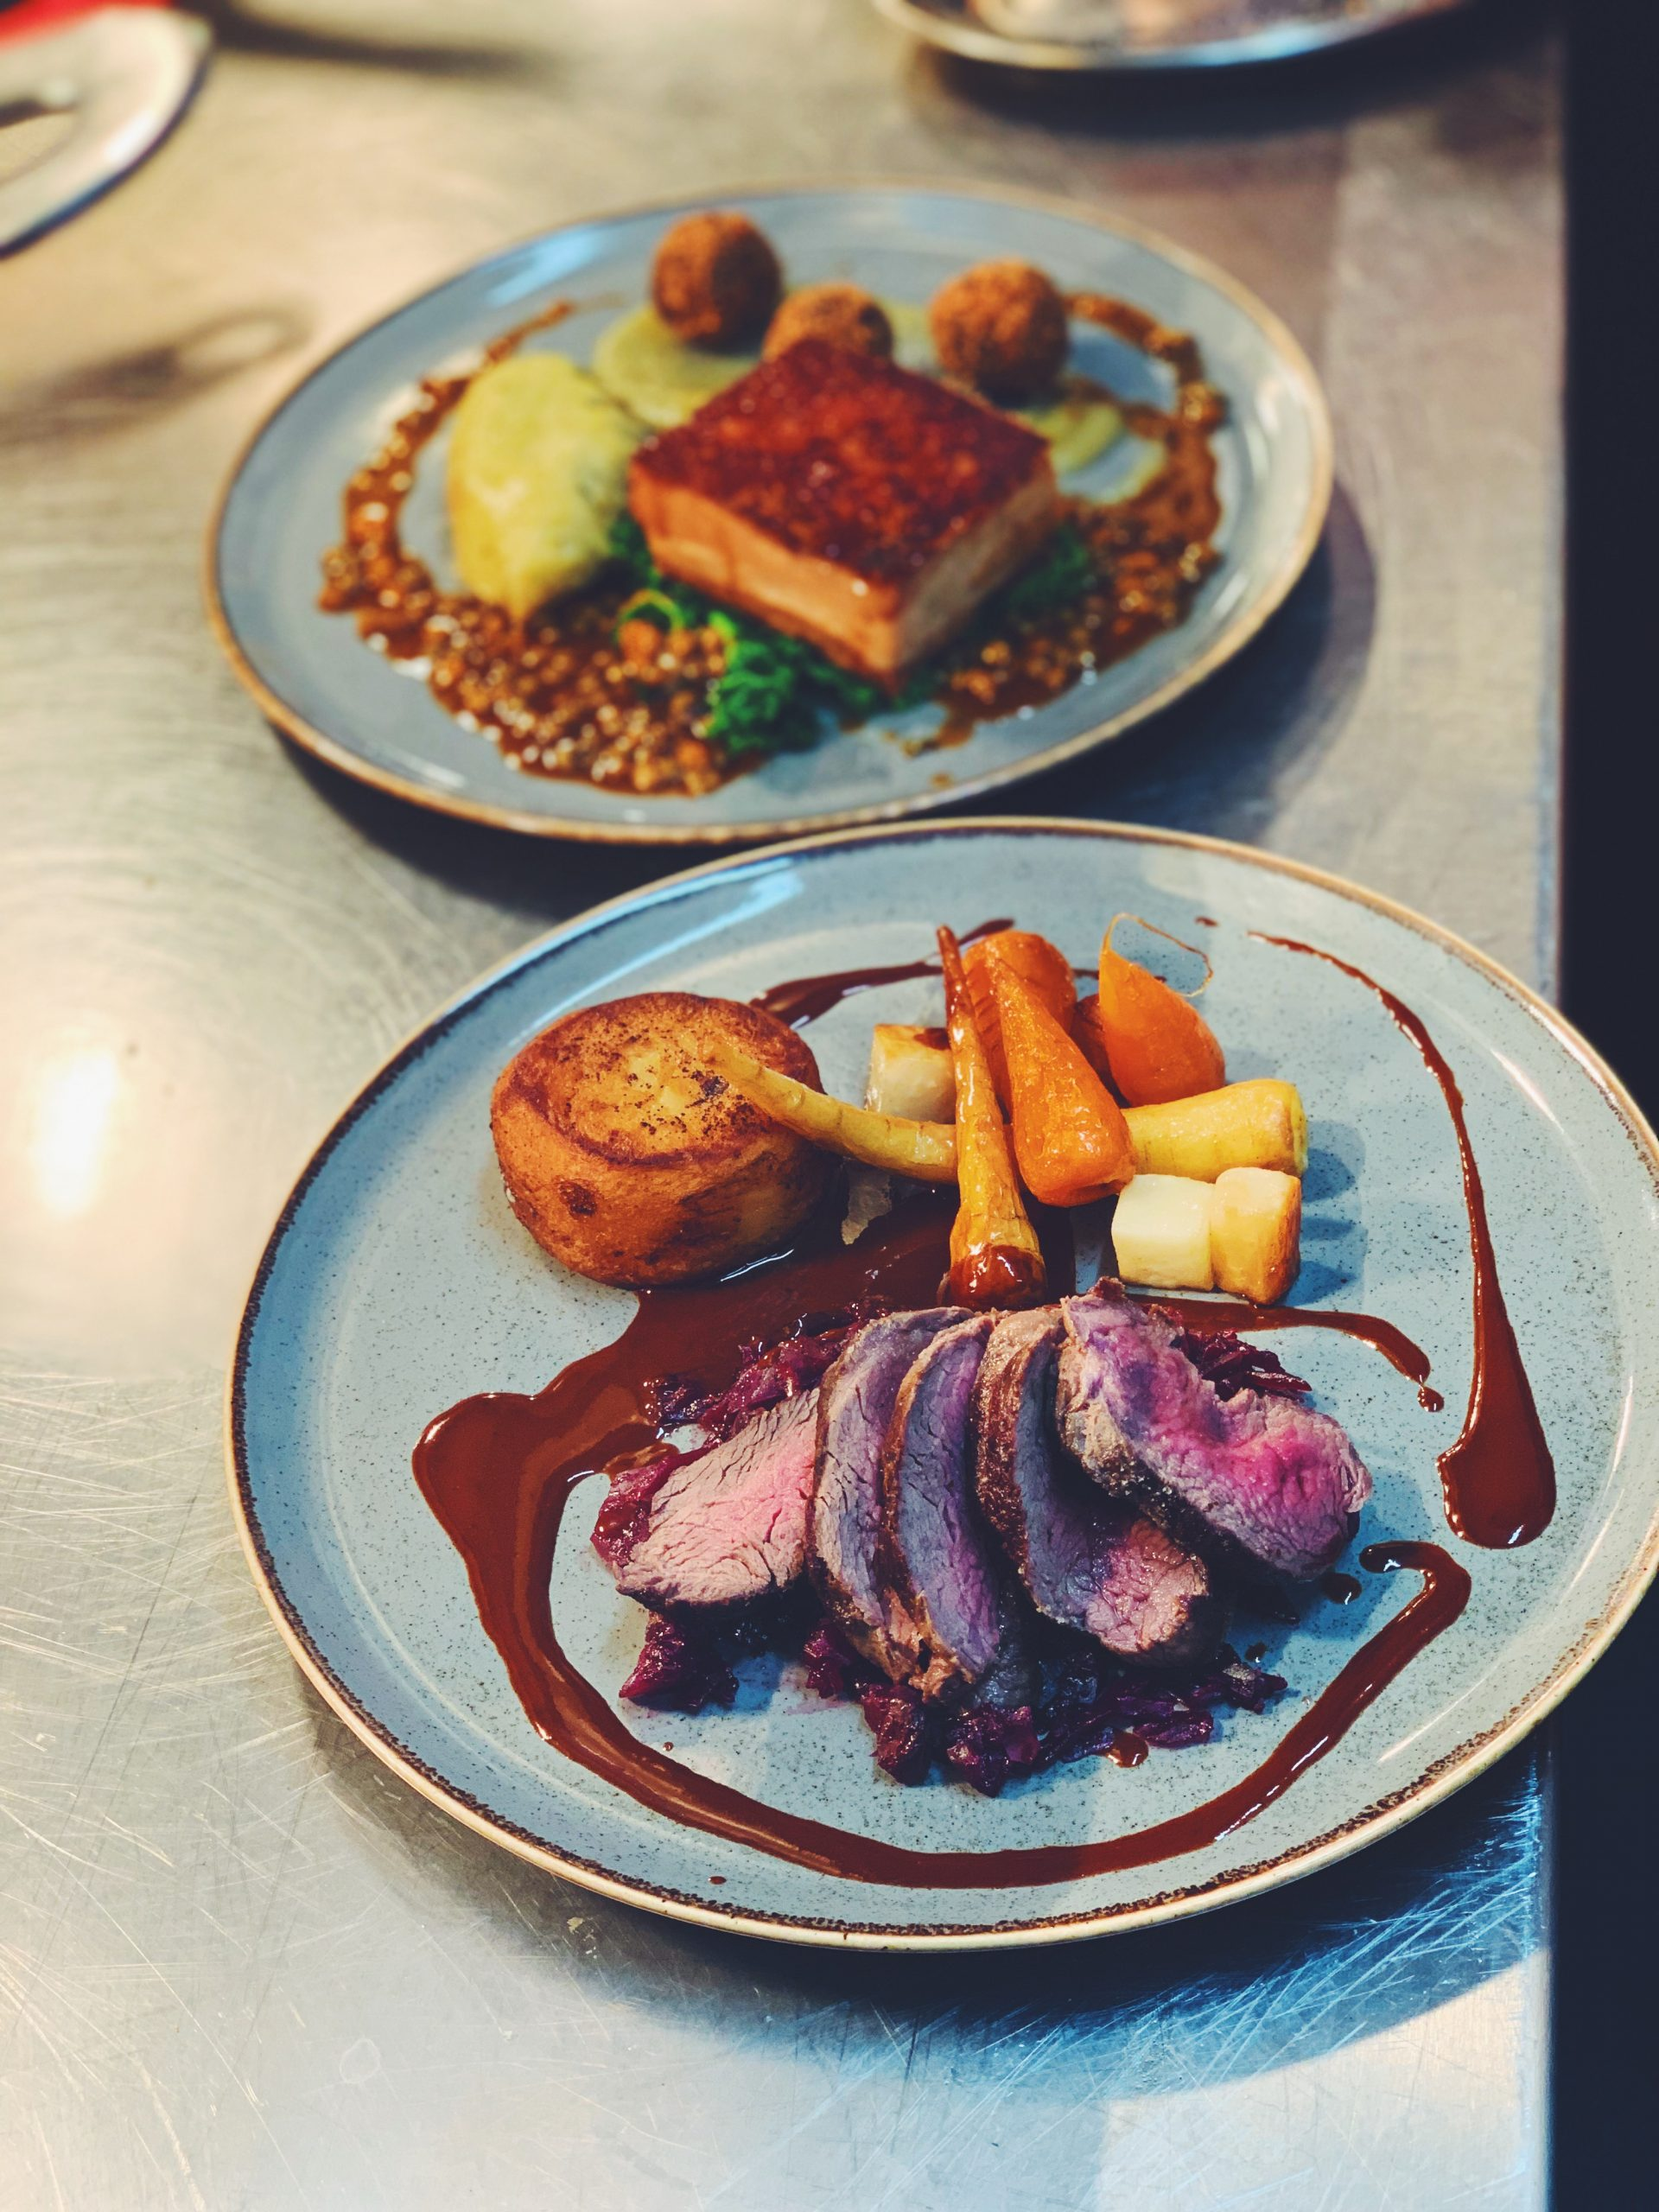 a menu which will comprise modern dishes which utilise the finest in local, British, seasonal produce.